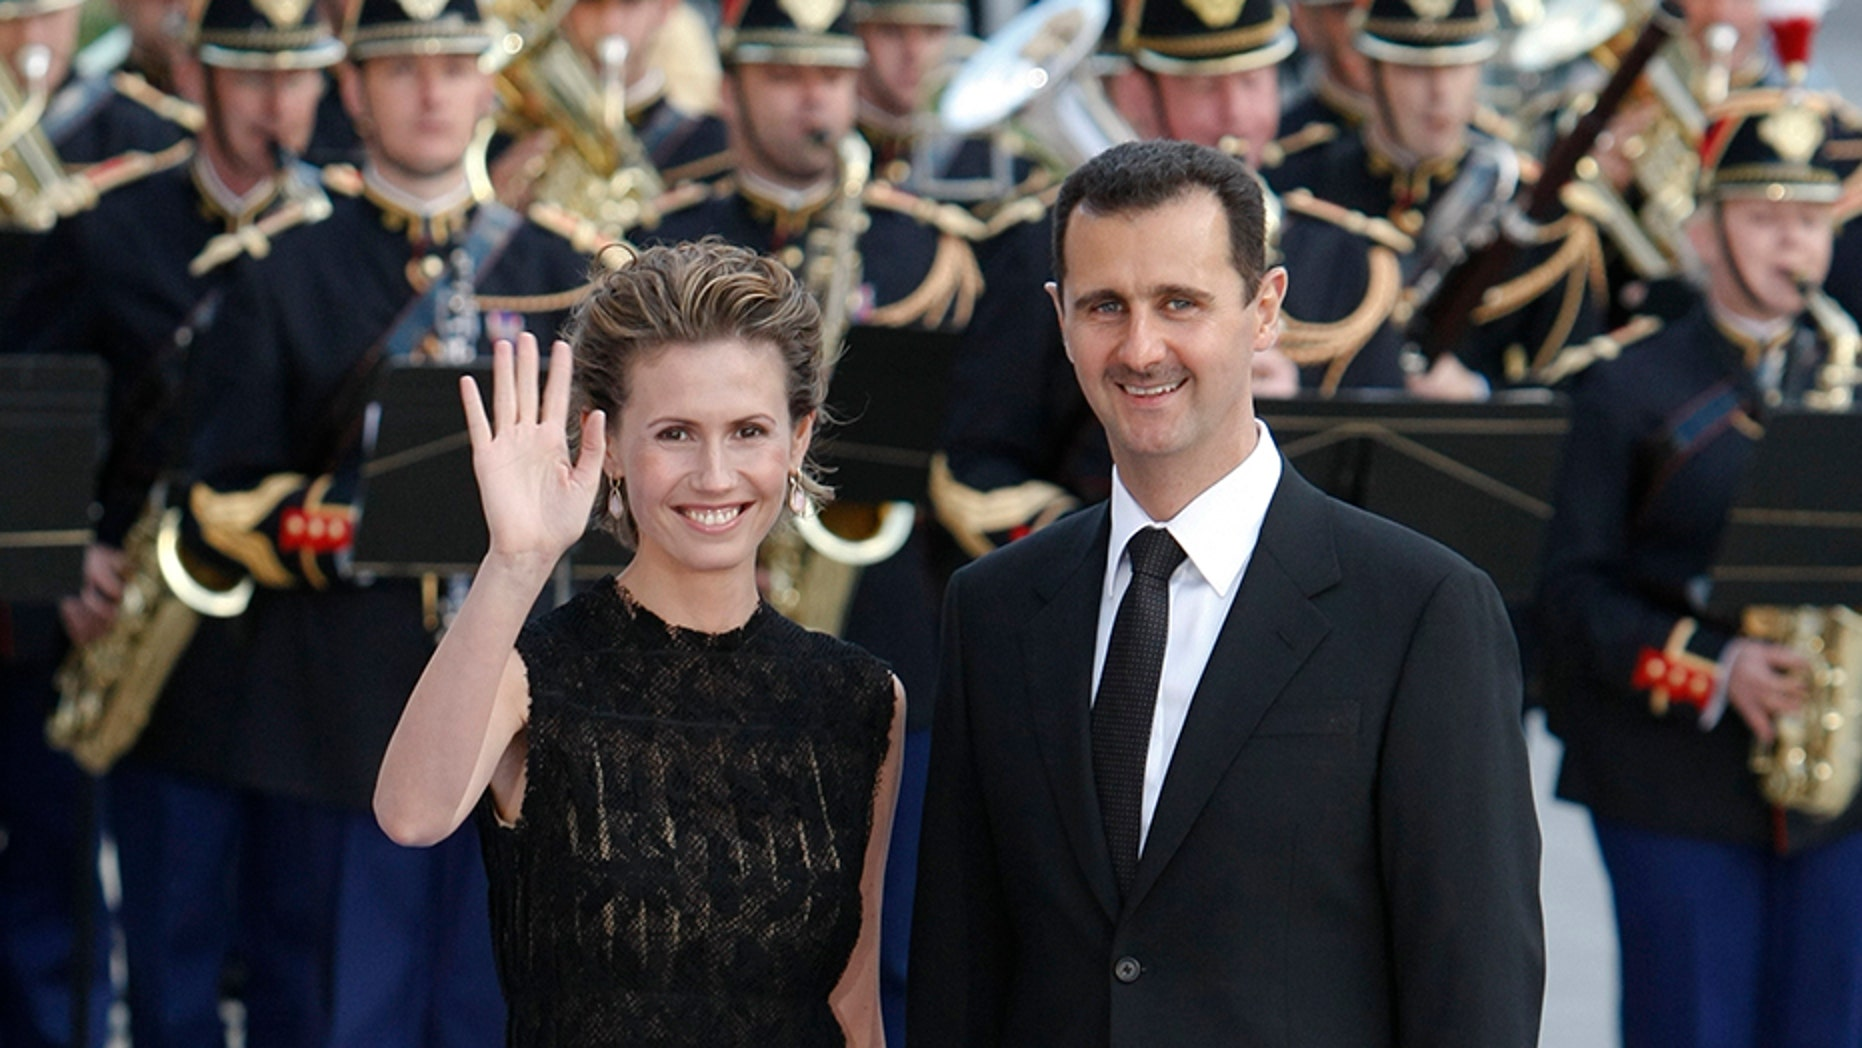 July 13, 2008: Syria's President Bashar Al-Assad and wife Asma arrive at a dinner during a EU-Mediterranean summit in Paris.